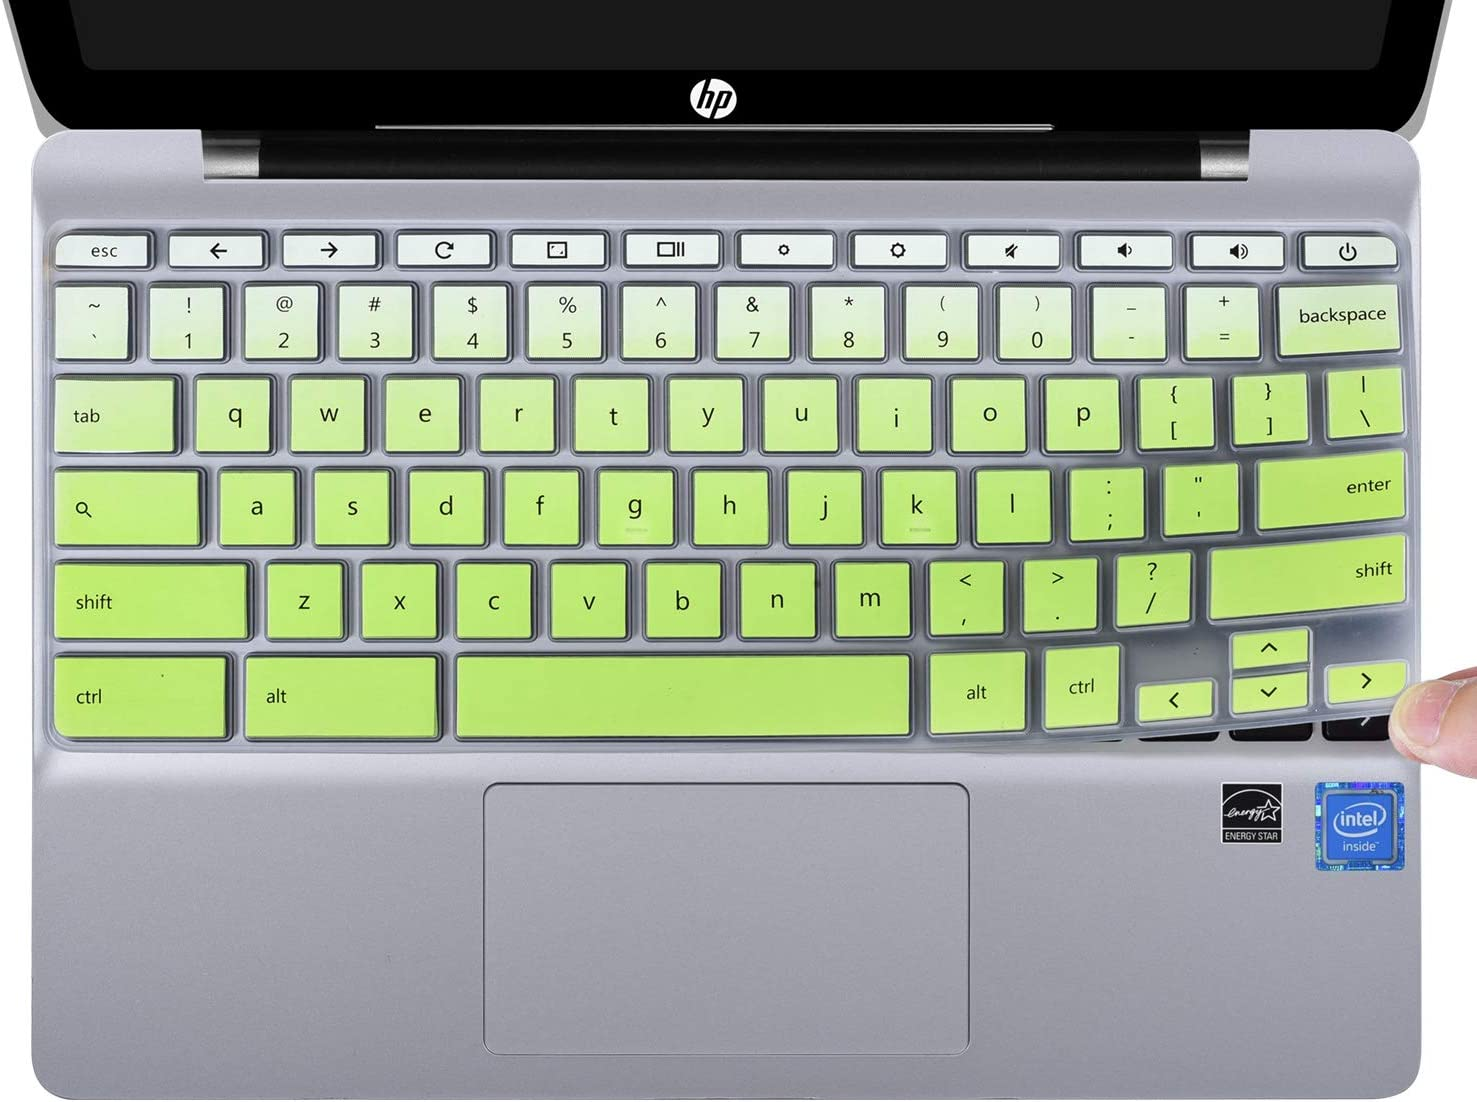 "CaseBuy Keyboard Cover Compatible HP Chromebook 11 x360 11.6"" & HP Chromebook 11 G2 / G3 / G4 / G5 / G6 EE / G7 EE 11.6 Inch, HP Chromebook 11 Accessories, Ombre Green"